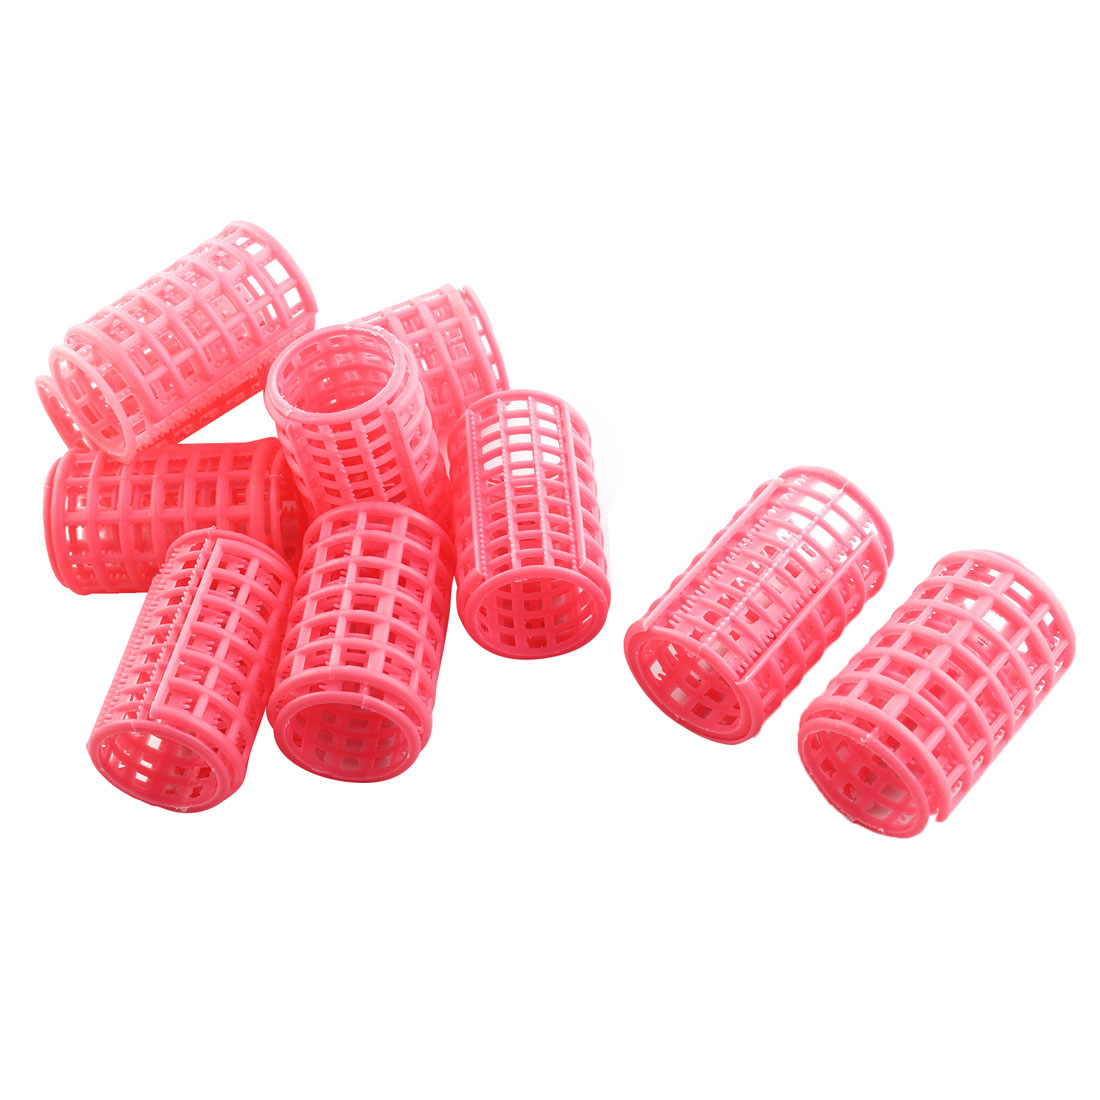 Unique Bargains Plastic Hair Rollers Curlers for Short Long Hair DIY 10 Pcs